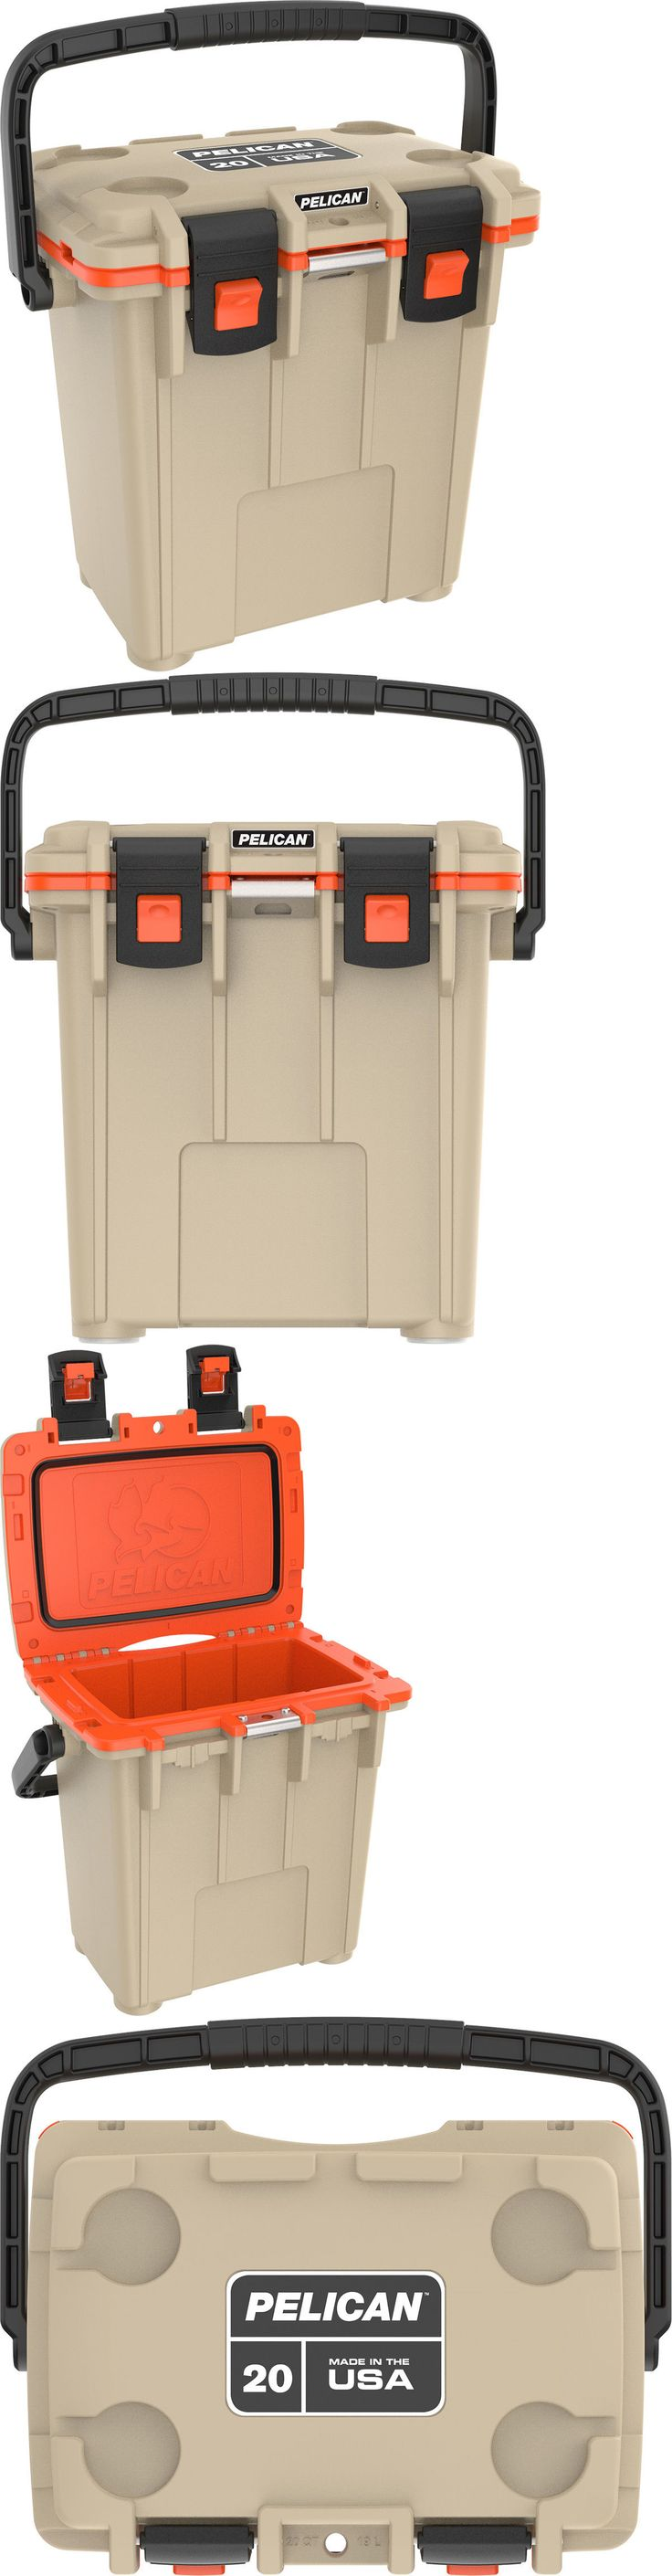 Camping Ice Boxes and Coolers 181382: Pelican Products 20 Quart Cooler Tan Orange 20Q-11Tanorg -> BUY IT NOW ONLY: $169 on eBay!